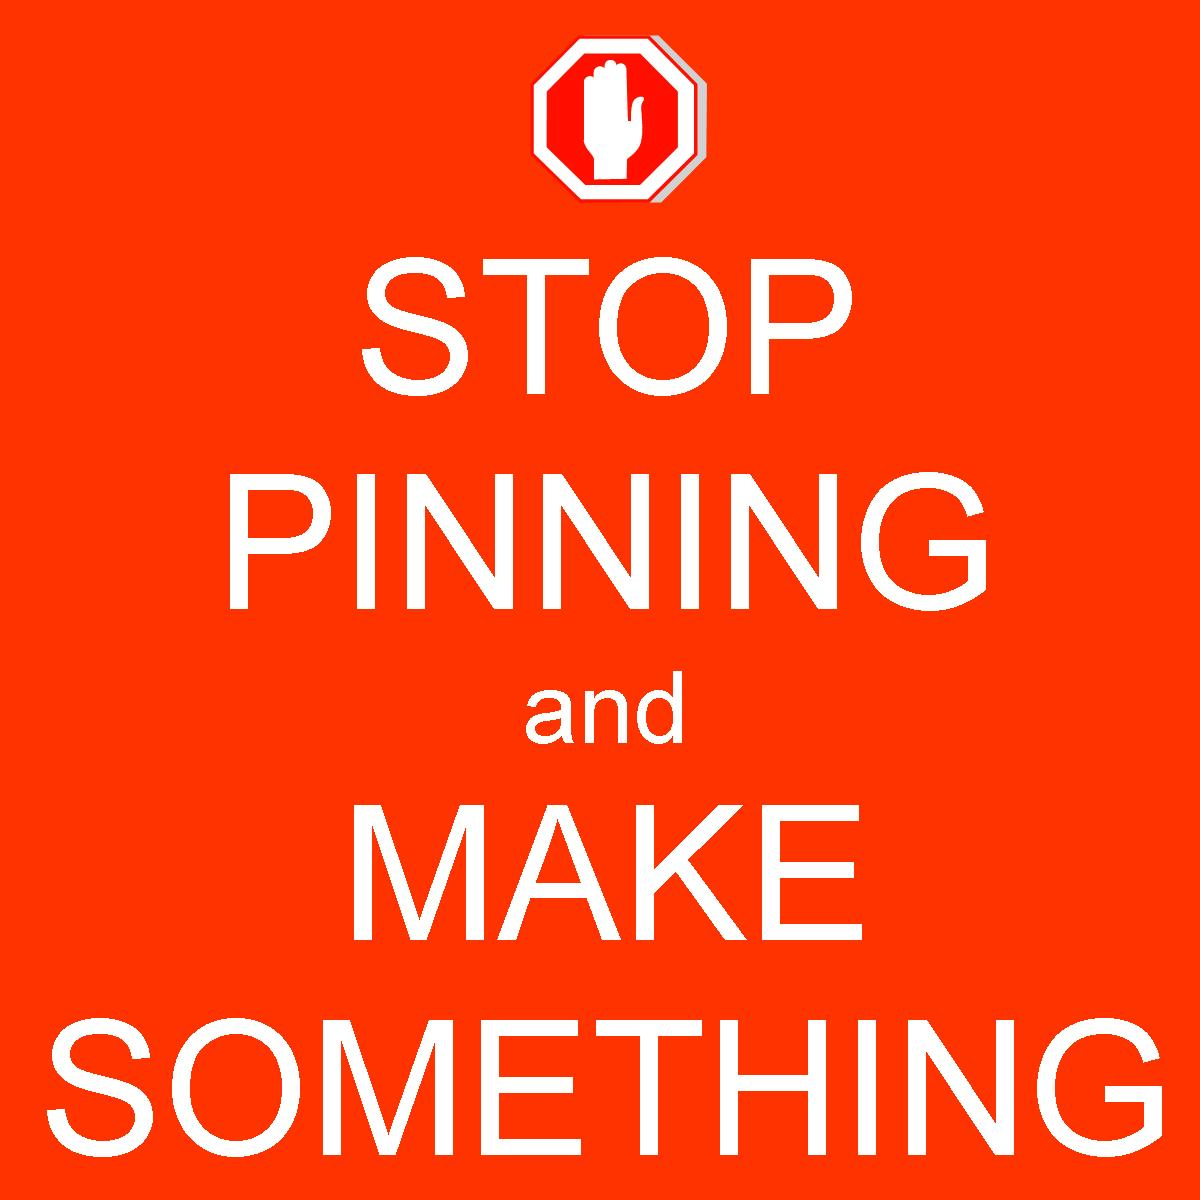 stop pinning and make something